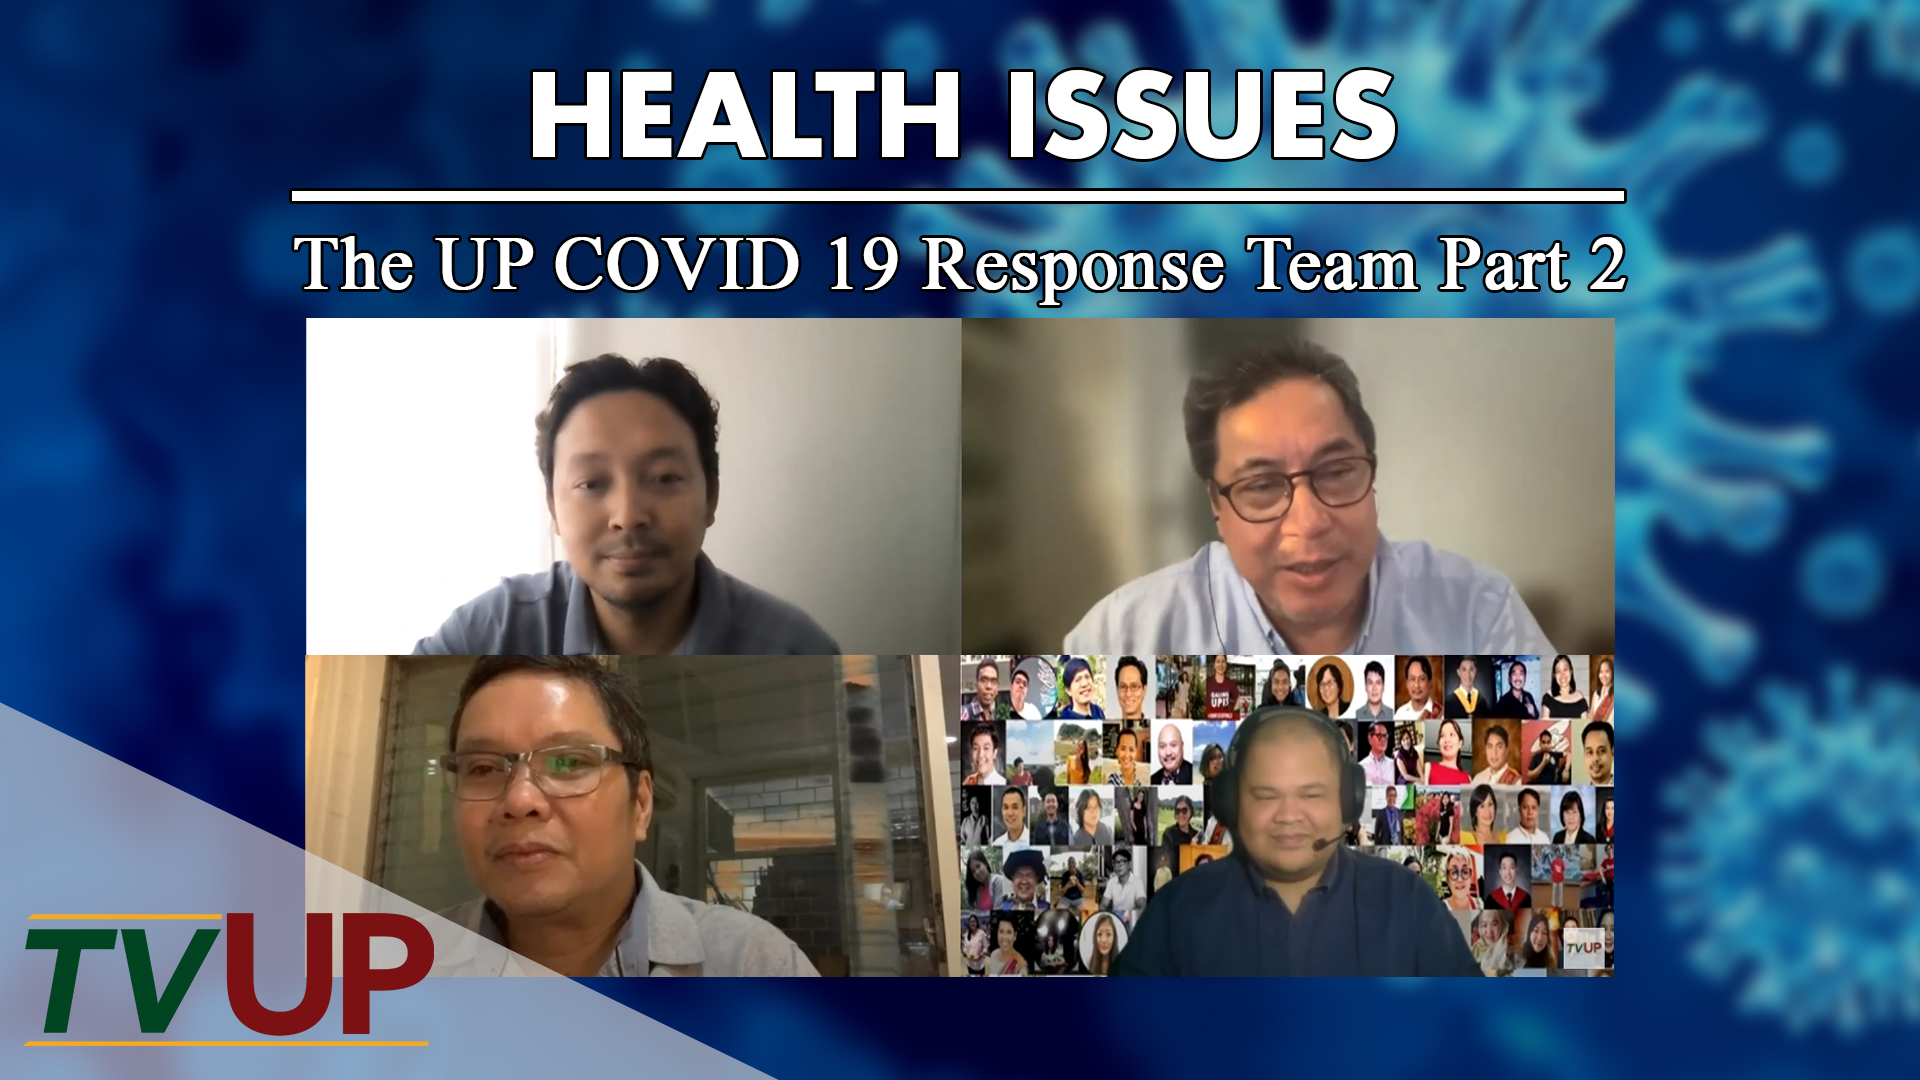 Health Issues Thumbnail The UP COVID 19 Response Team Part 2